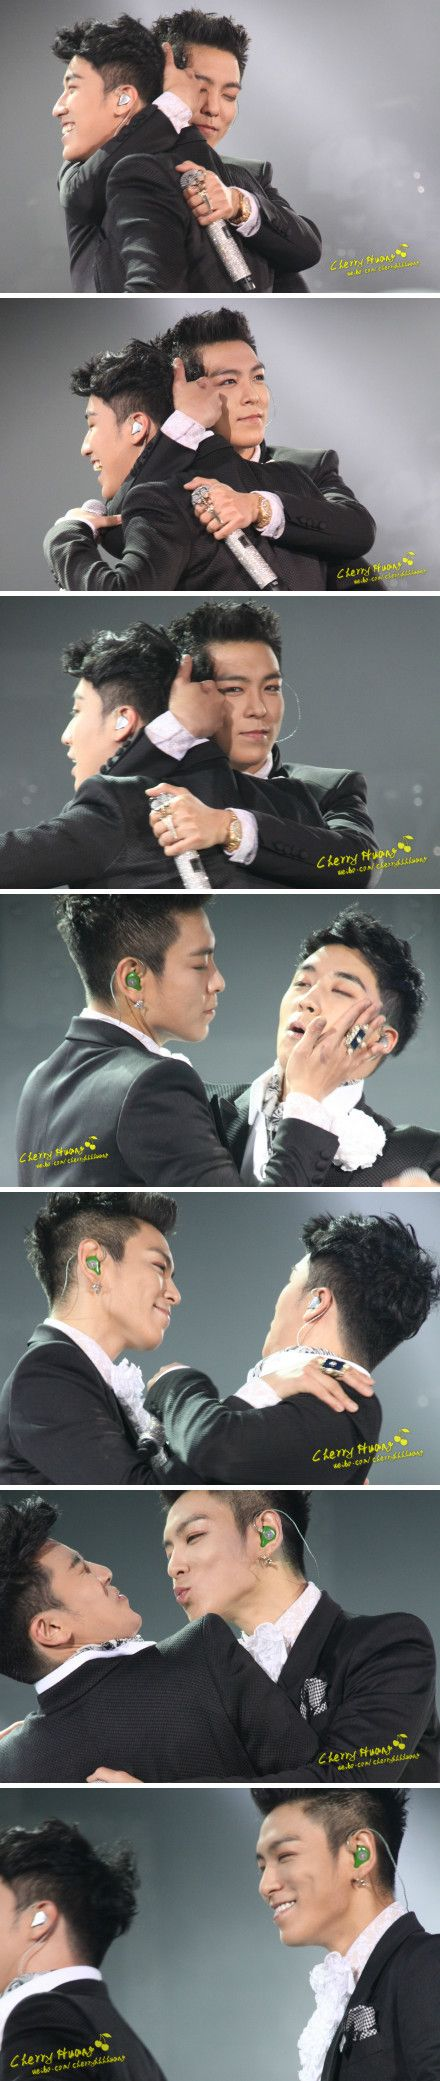 T.O.P Bugging Seungri. It's just pay back. :) I love his smile at the end, it just says aren't I so funny ^_^